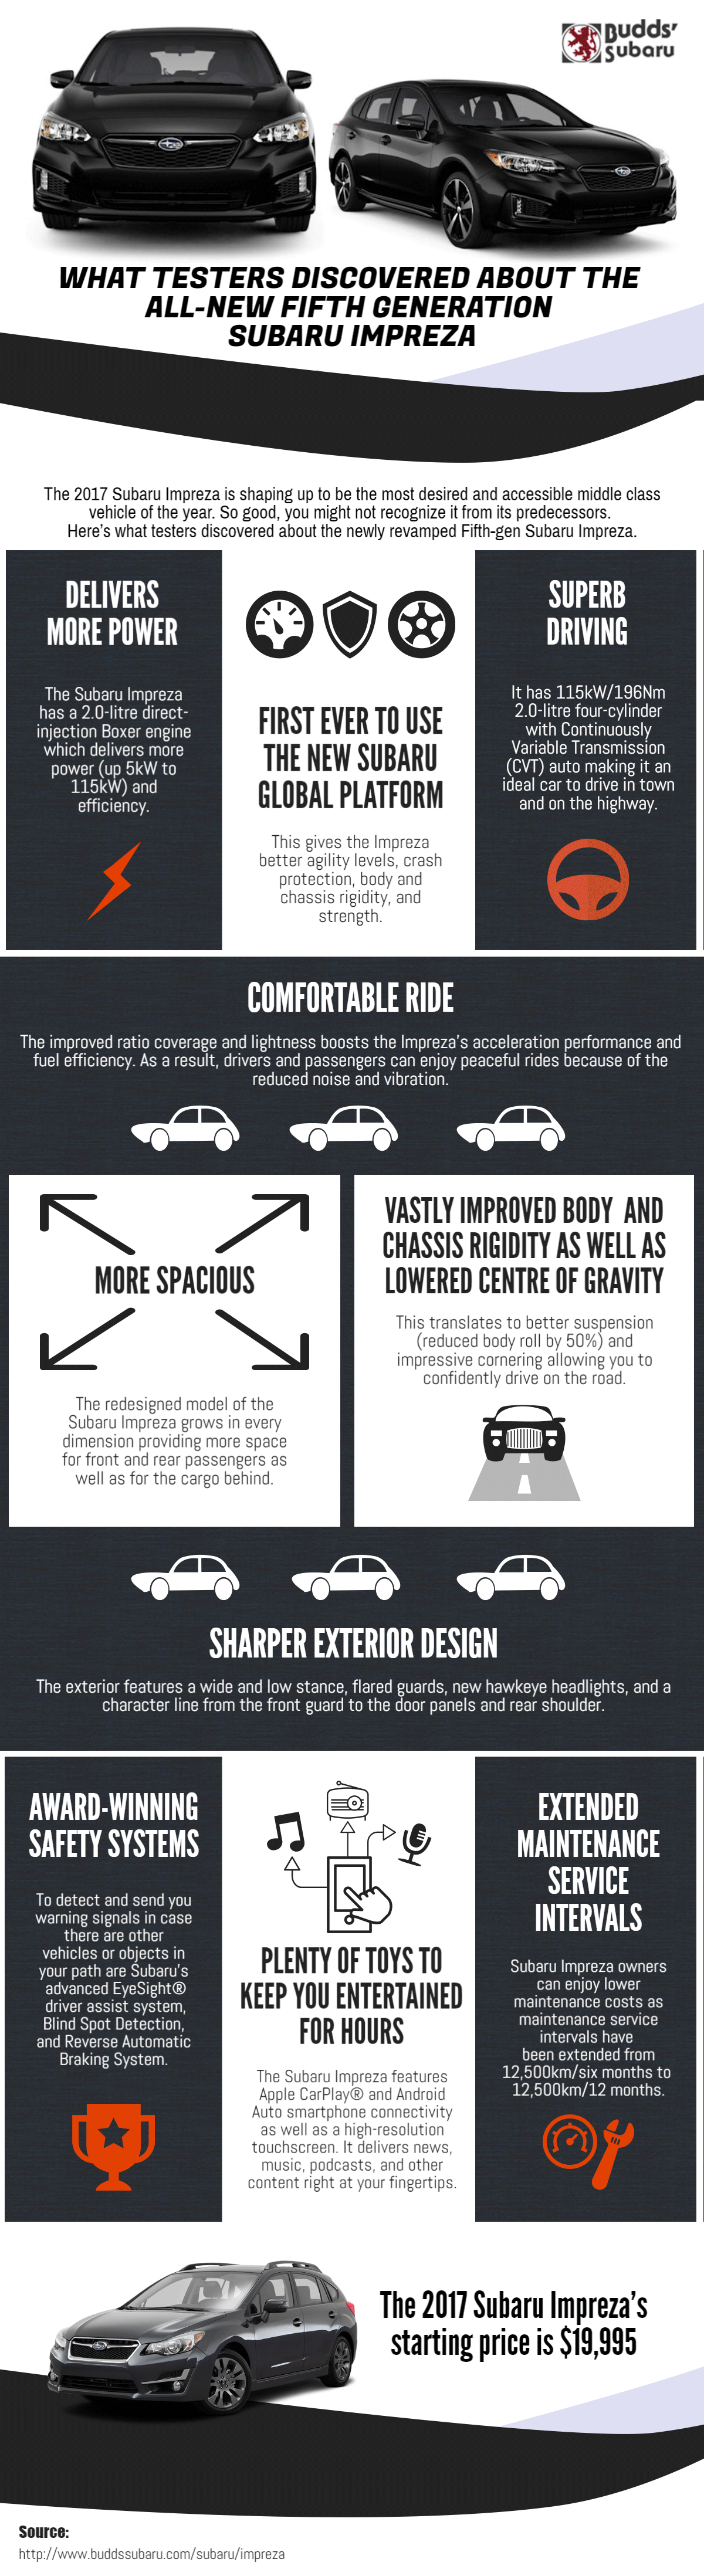 What_Testers_Discovered_About_The_All-New_Fifth_Generation_Subaru_Impreza_infographic